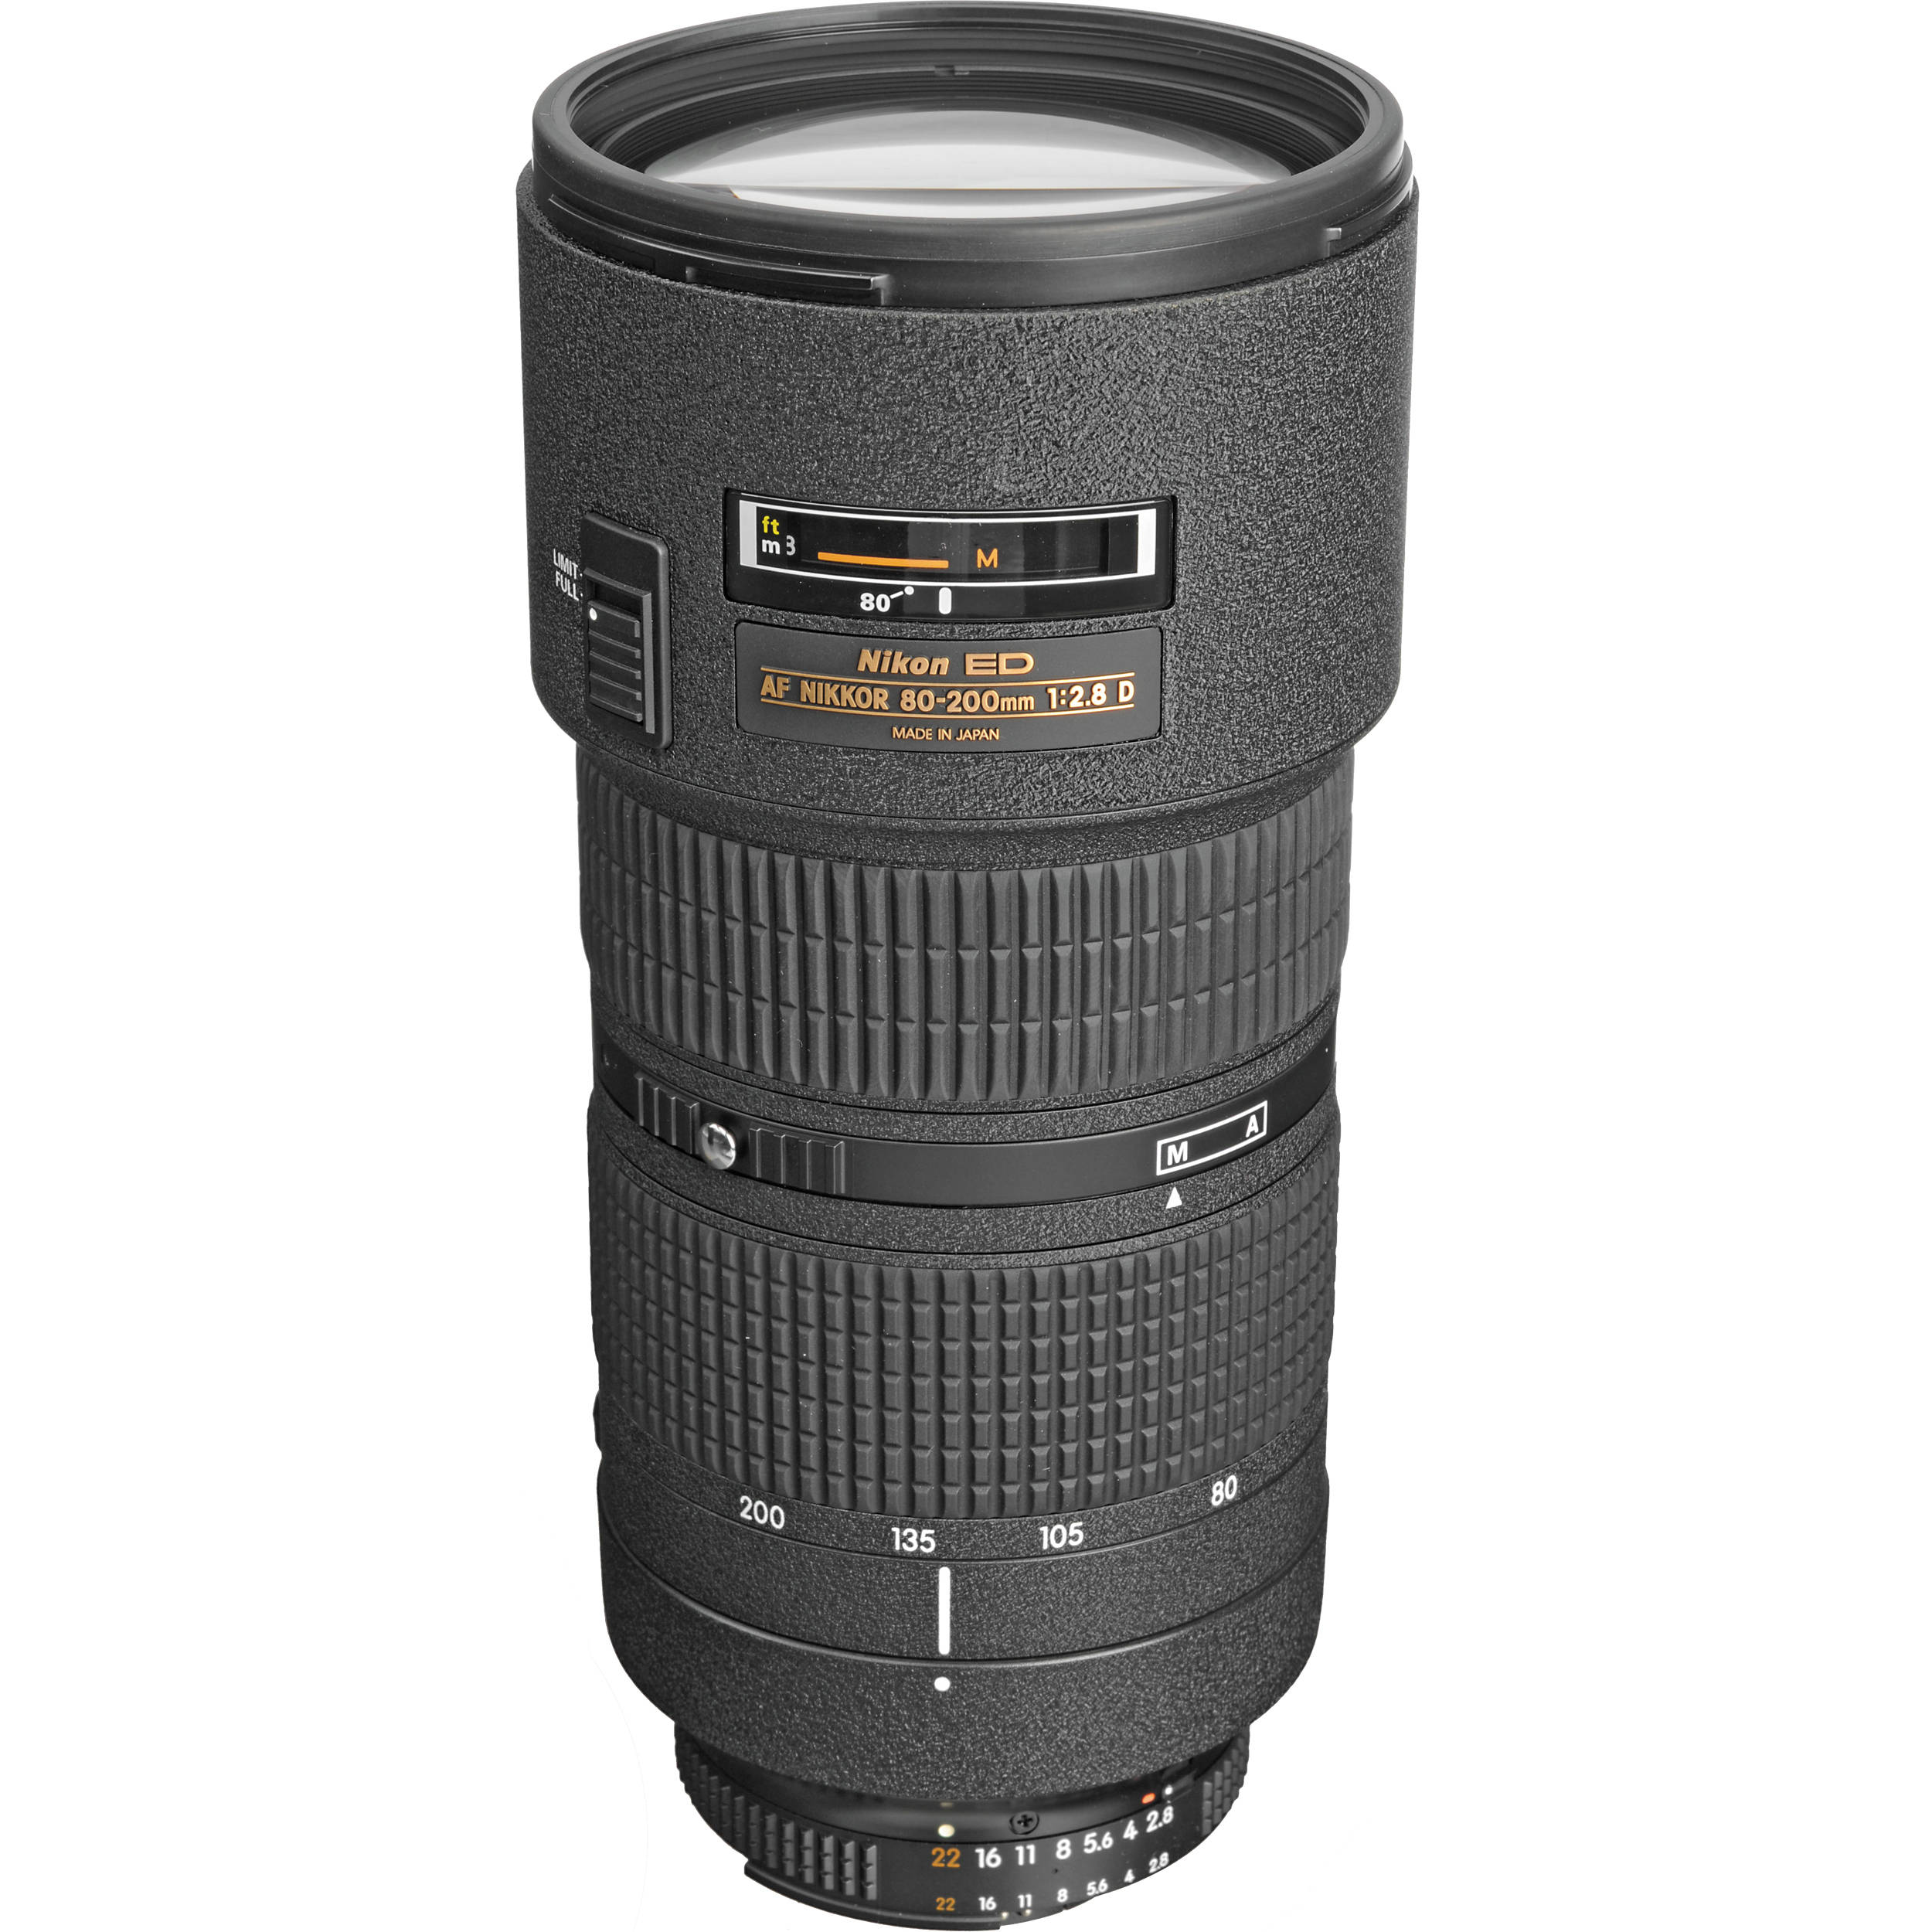 nikon af zoom nikkor 80 200mm f 2 8d ed lens 1986 b h photo. Black Bedroom Furniture Sets. Home Design Ideas